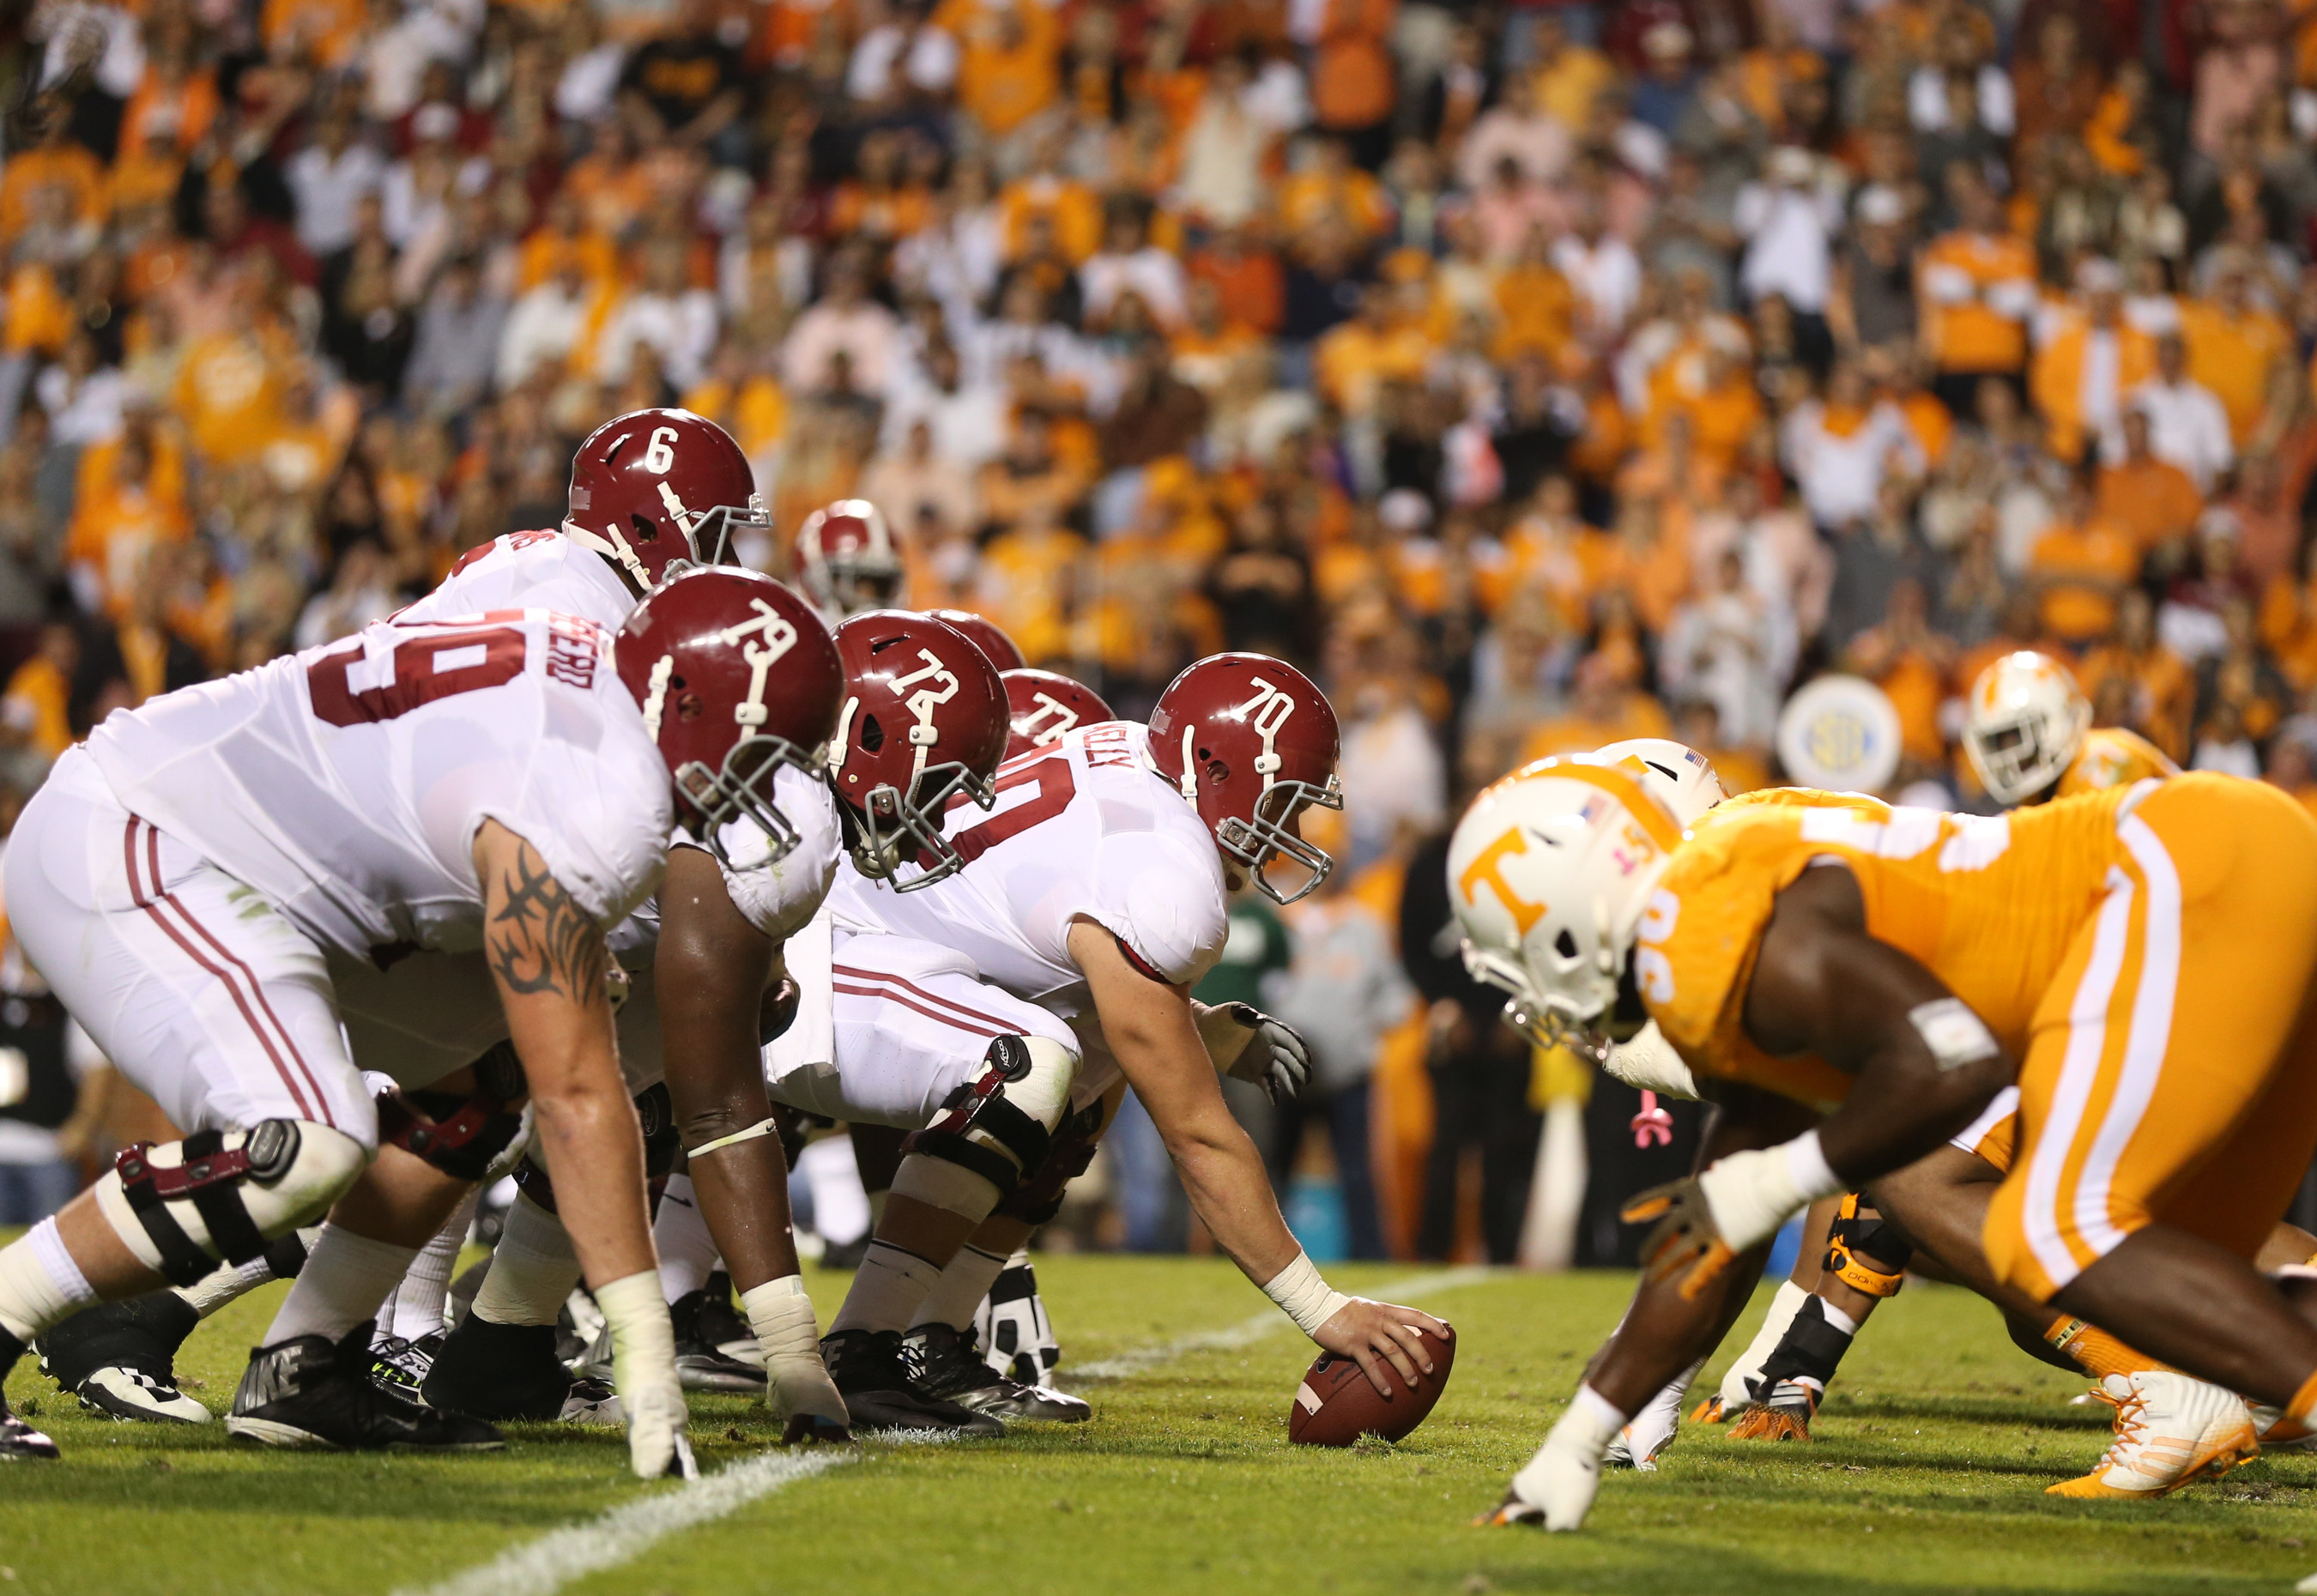 Silverberg: Alabama hasn't been Tennessee's biggest problem